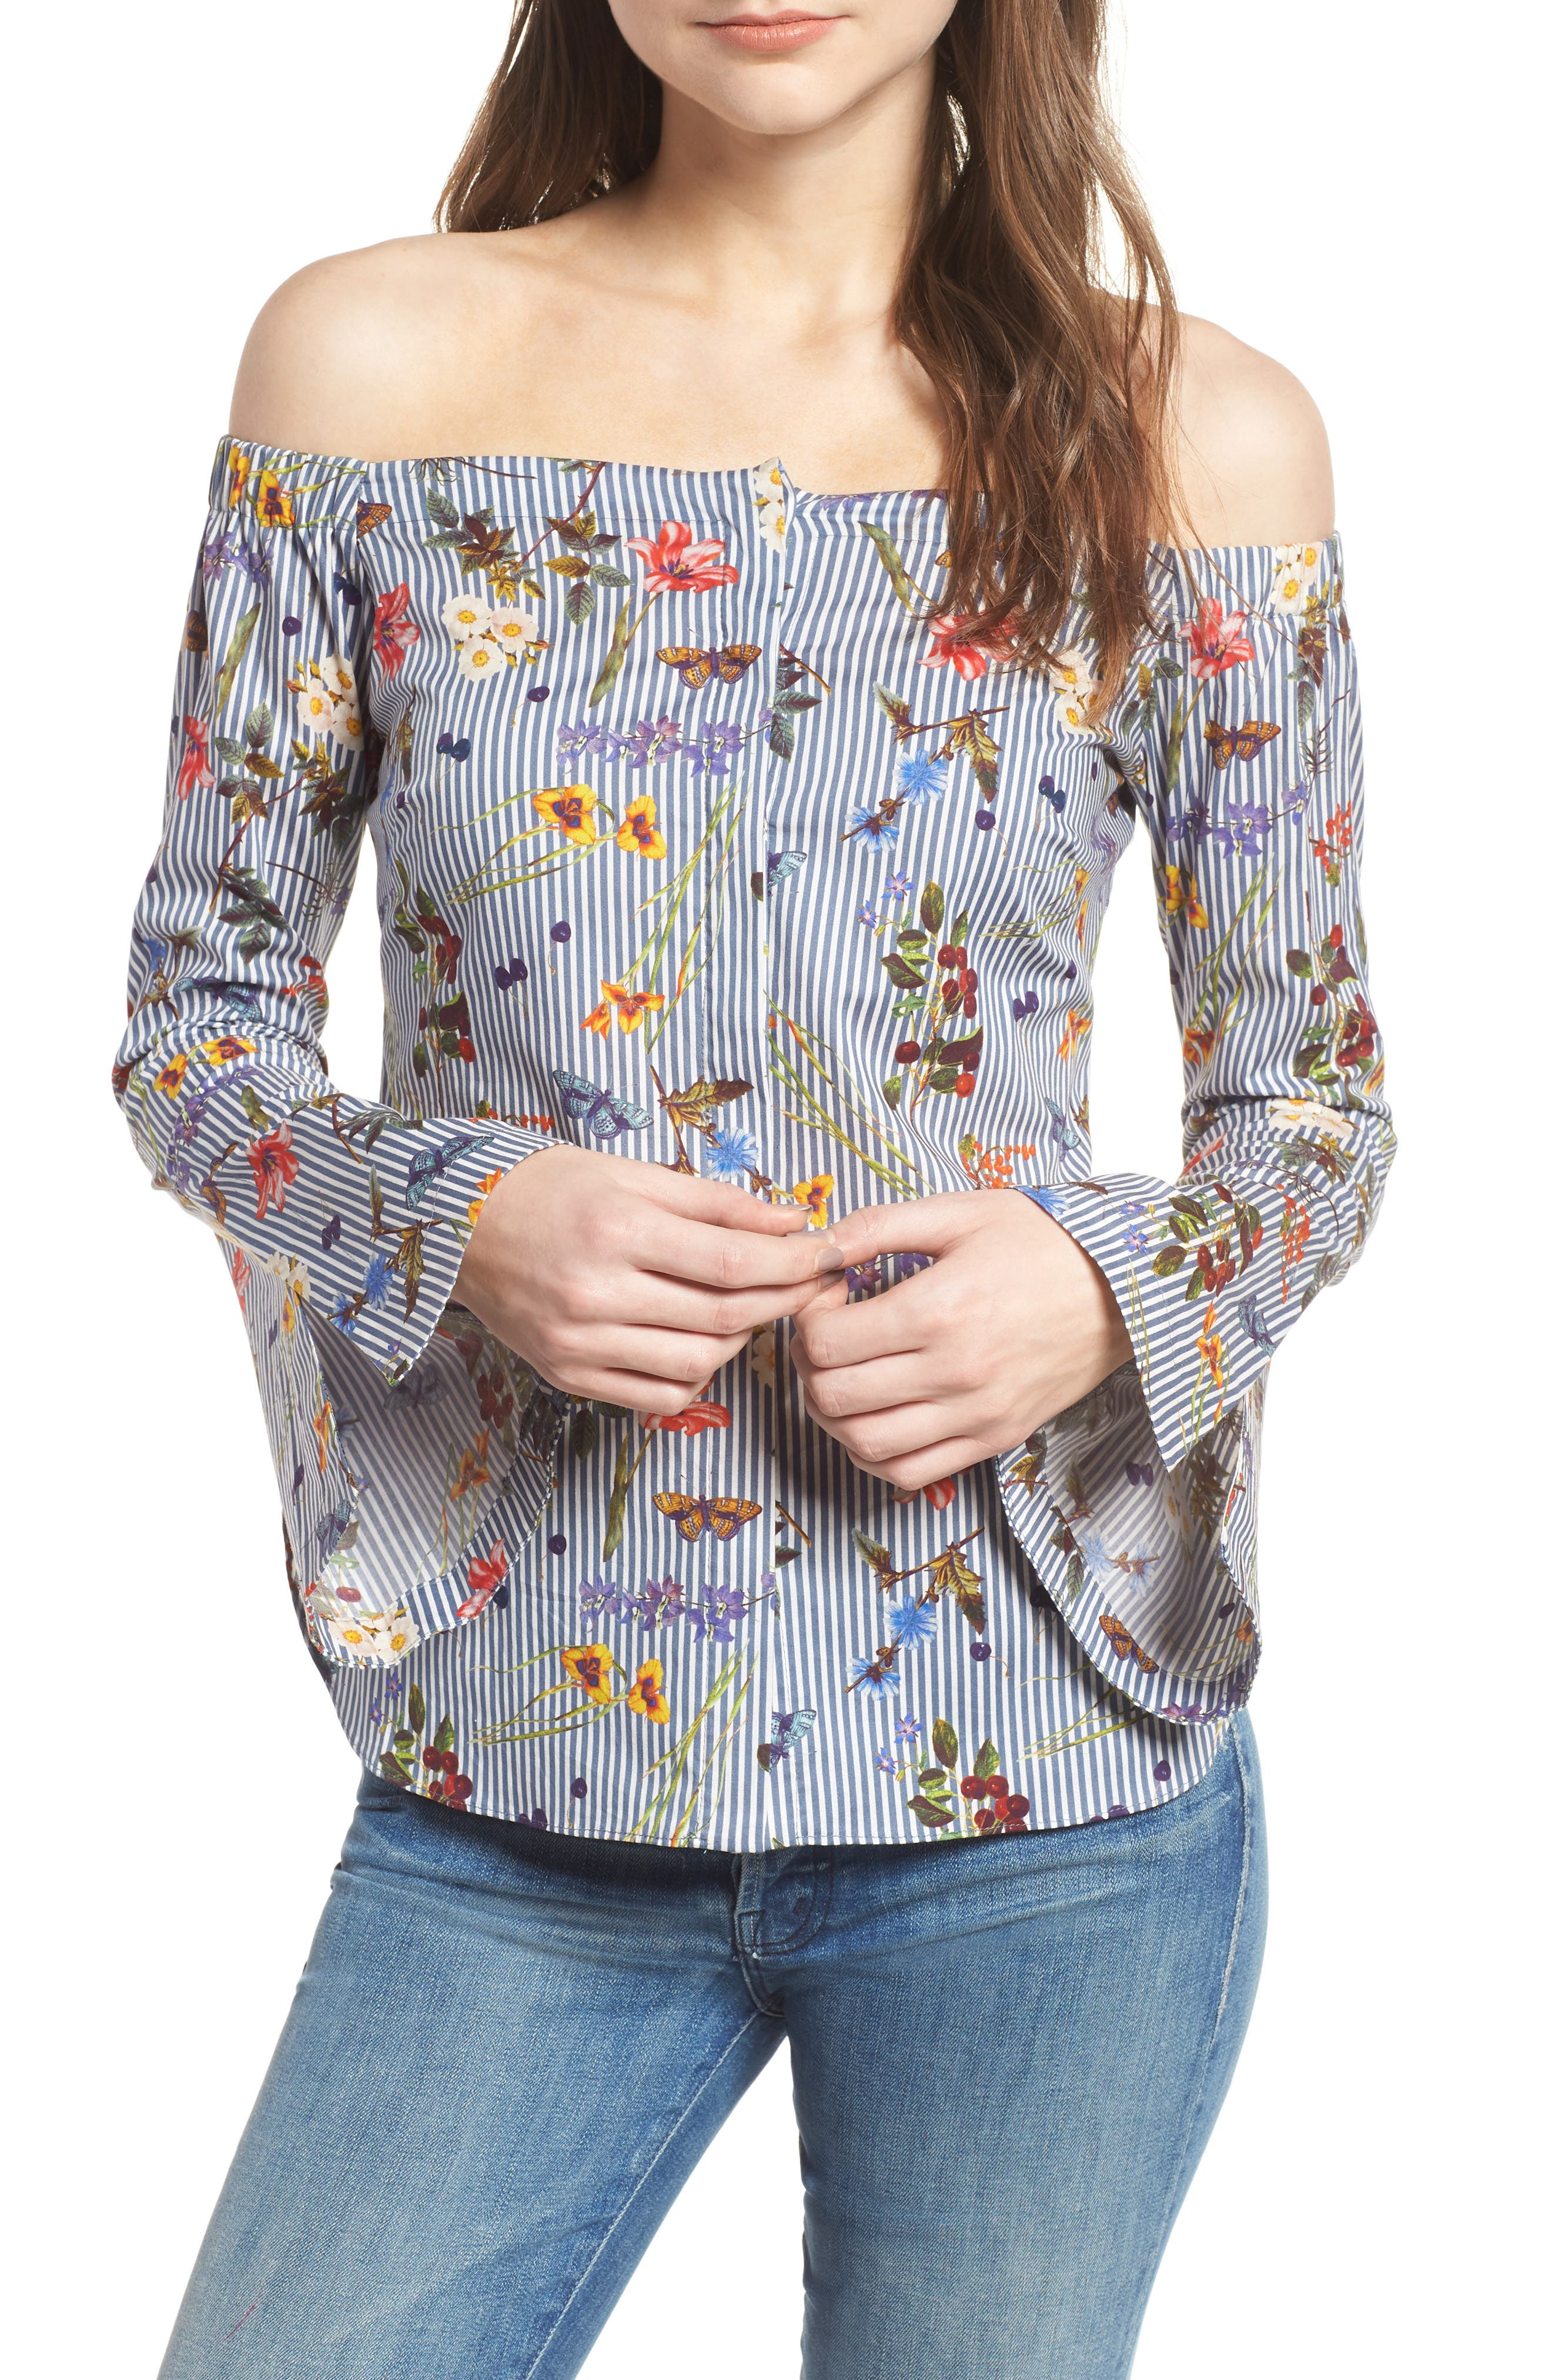 Bailey 44 Horticulture Off the Shoulder Top